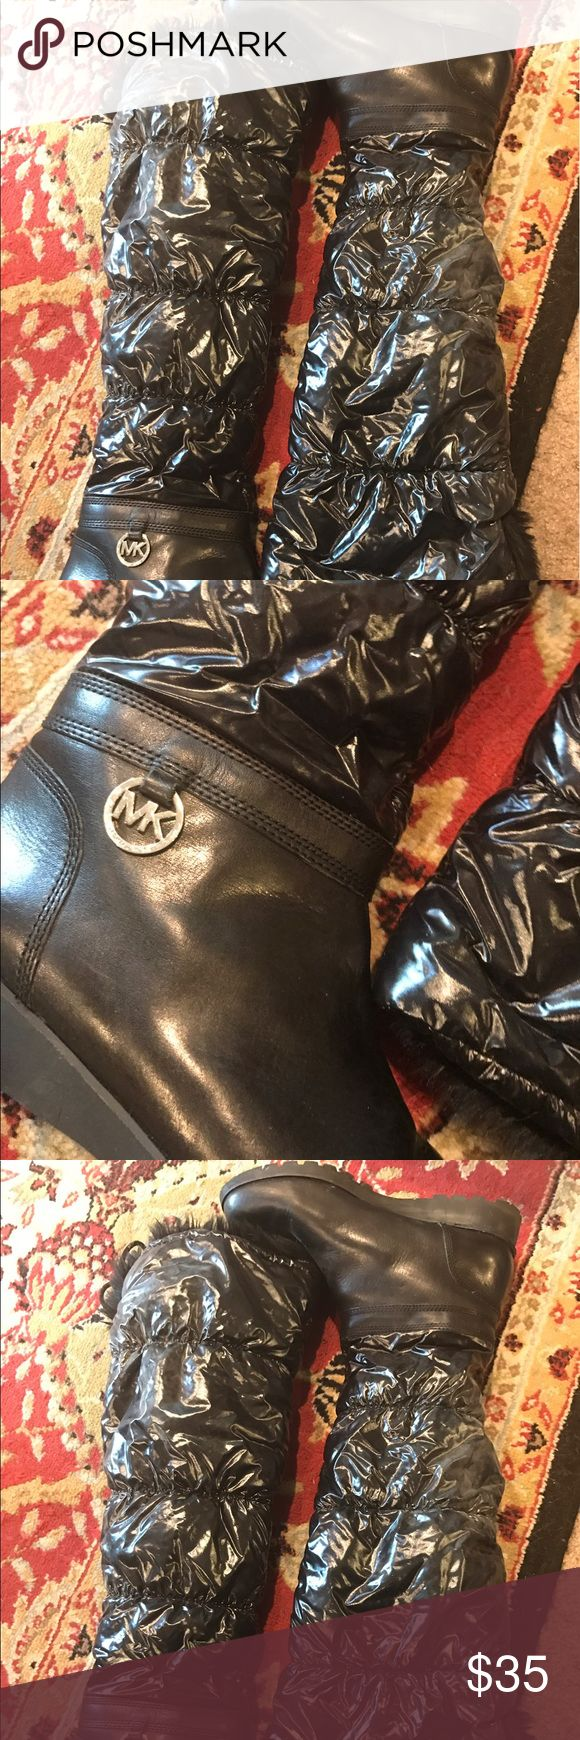 Mk boots slightly over the knee. Fantastic!! Almost new. Used once. Great winter boot. Michael Kors Shoes Winter & Rain Boots